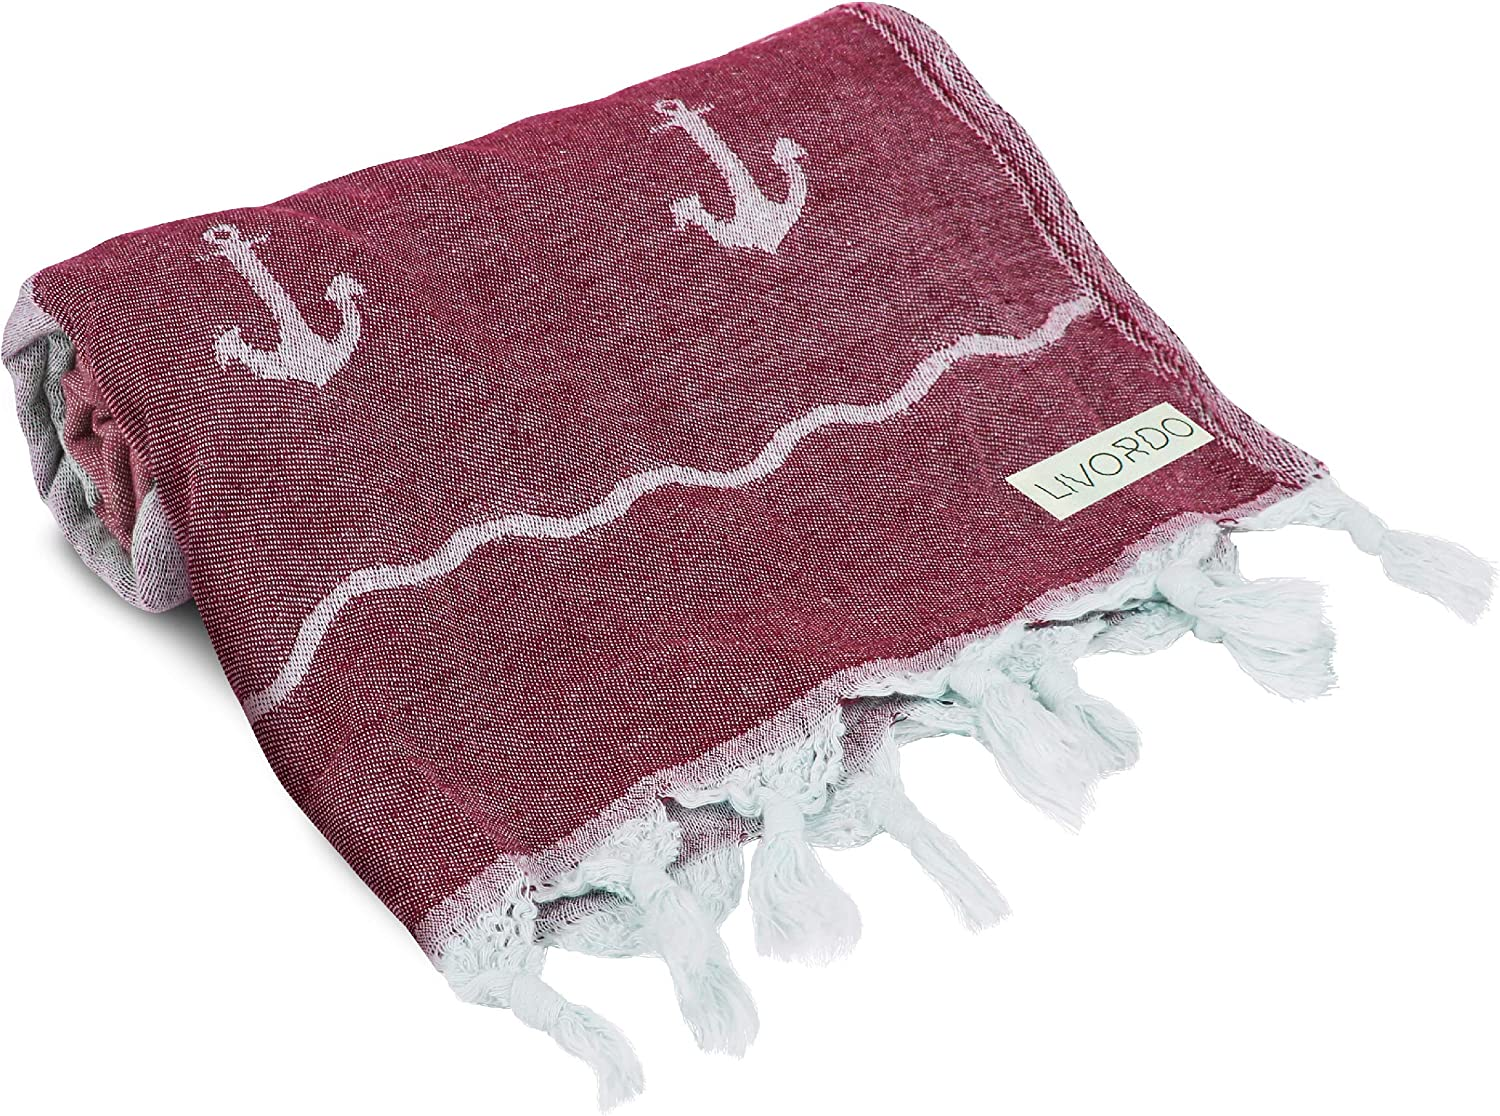 Livordo Turkish Towel Beach Towels, Soft, Absorbent 100% Cotton Made in Turkey Quick Dry Lightweight Bath Sheet